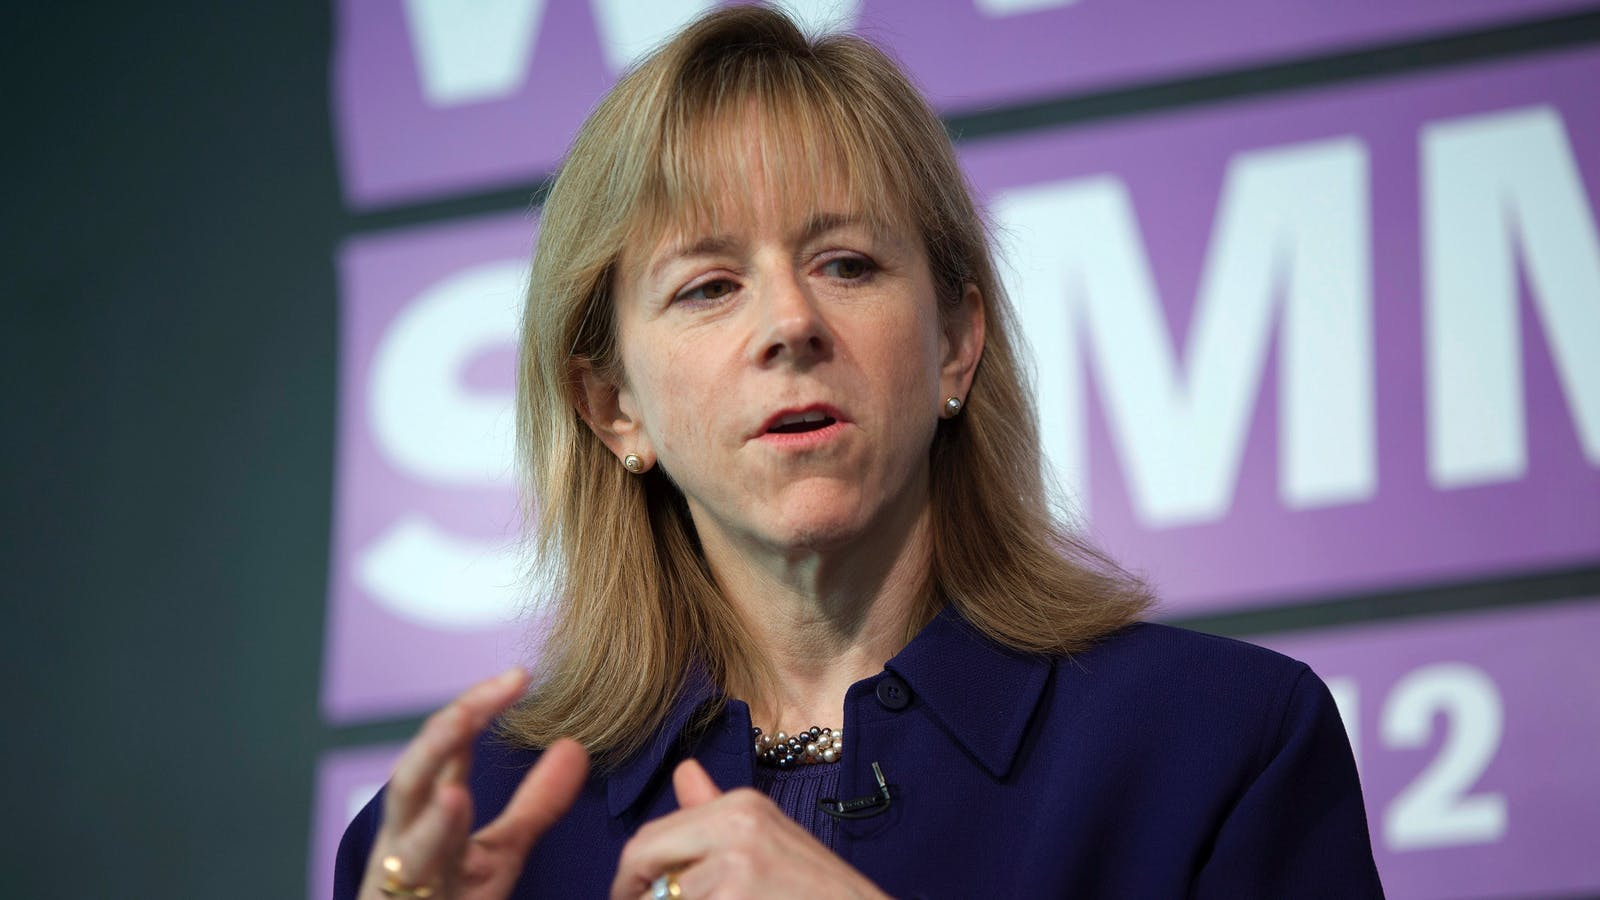 Kate Mitchell, co-chair of the NVCA diversity task force. Photo by Bloomberg.